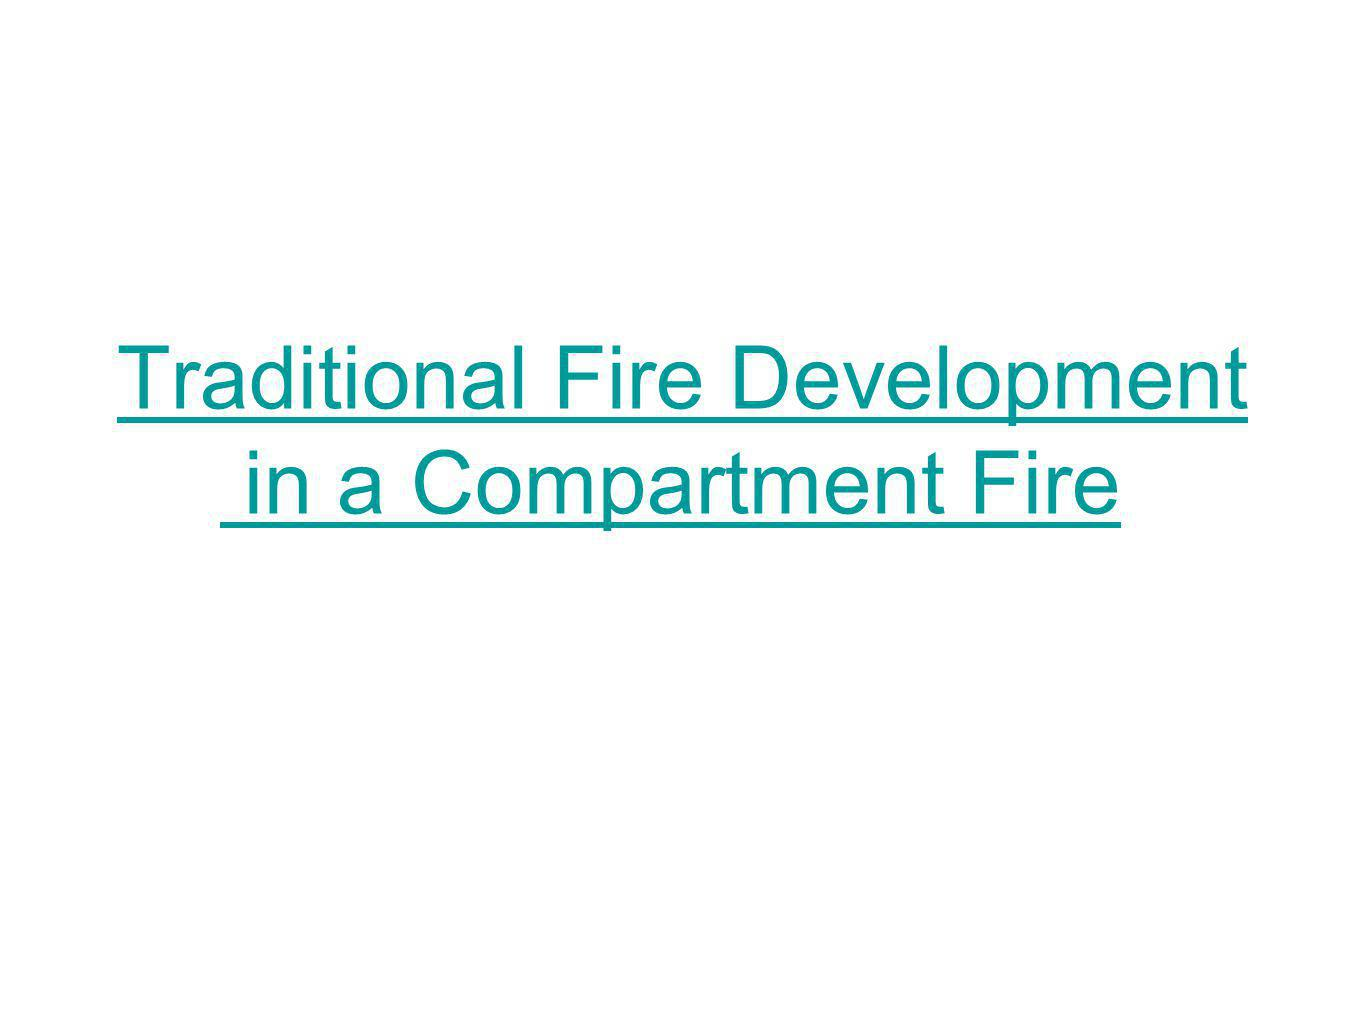 Traditional Fire Development in a Compartment Fire